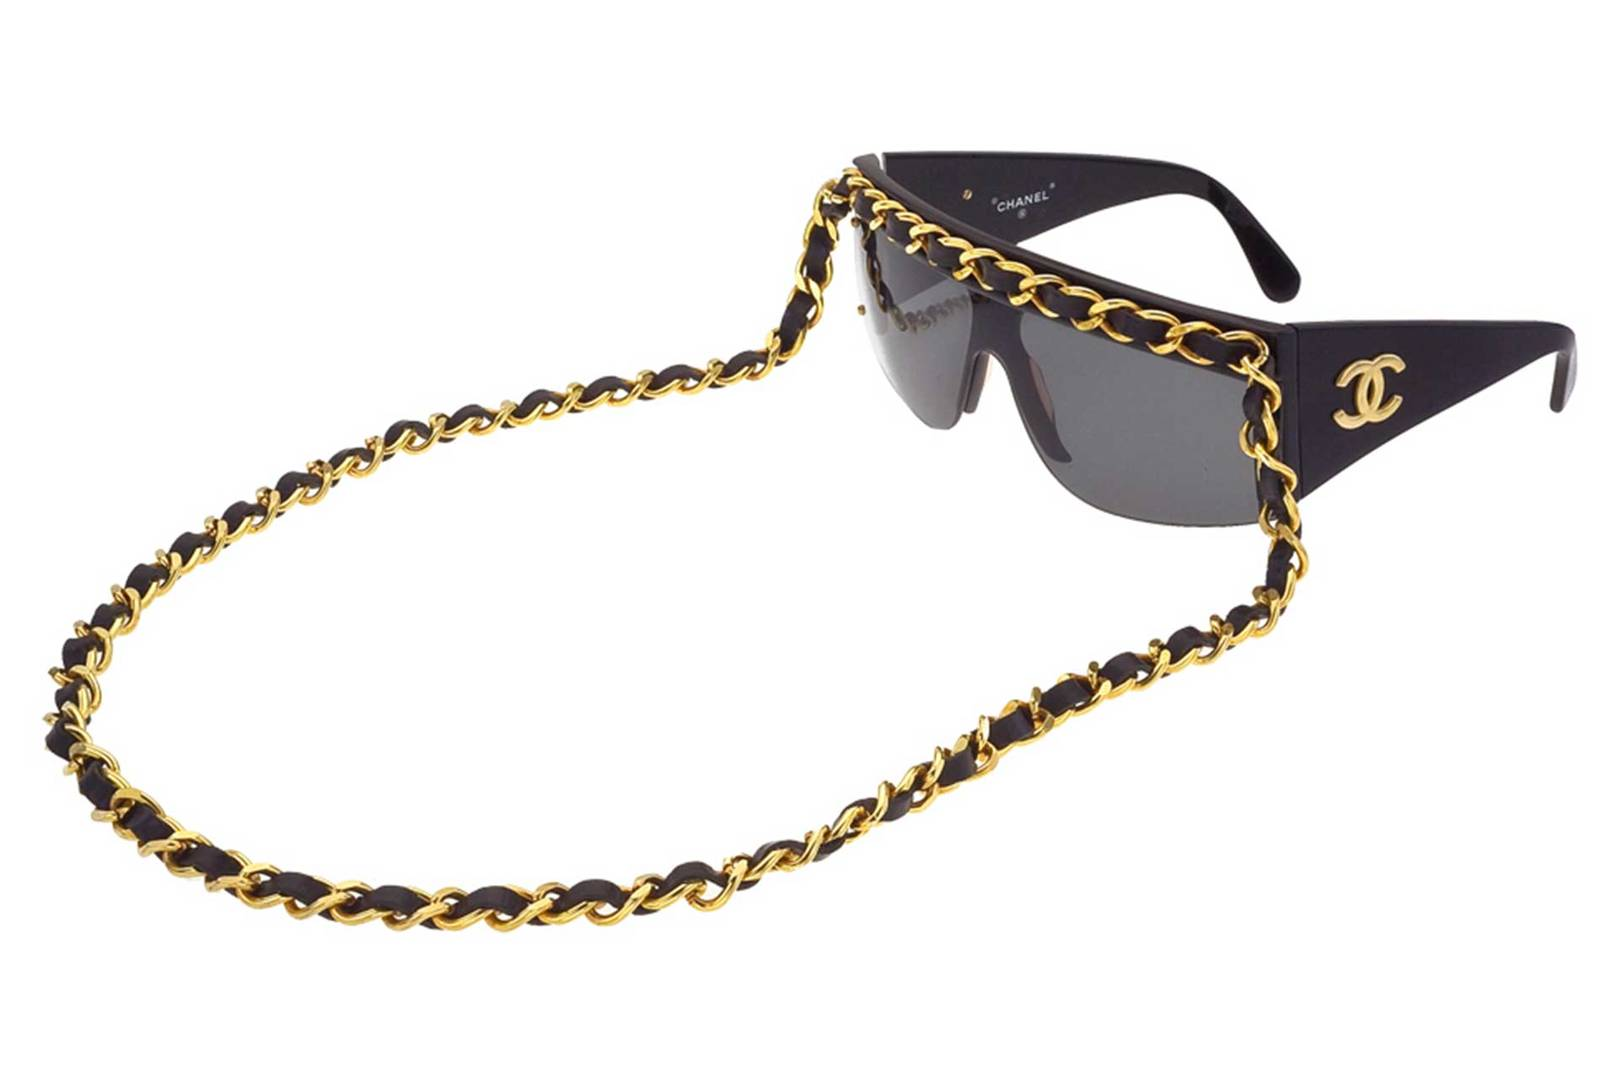 d94b676d98b Sunglasses Chains